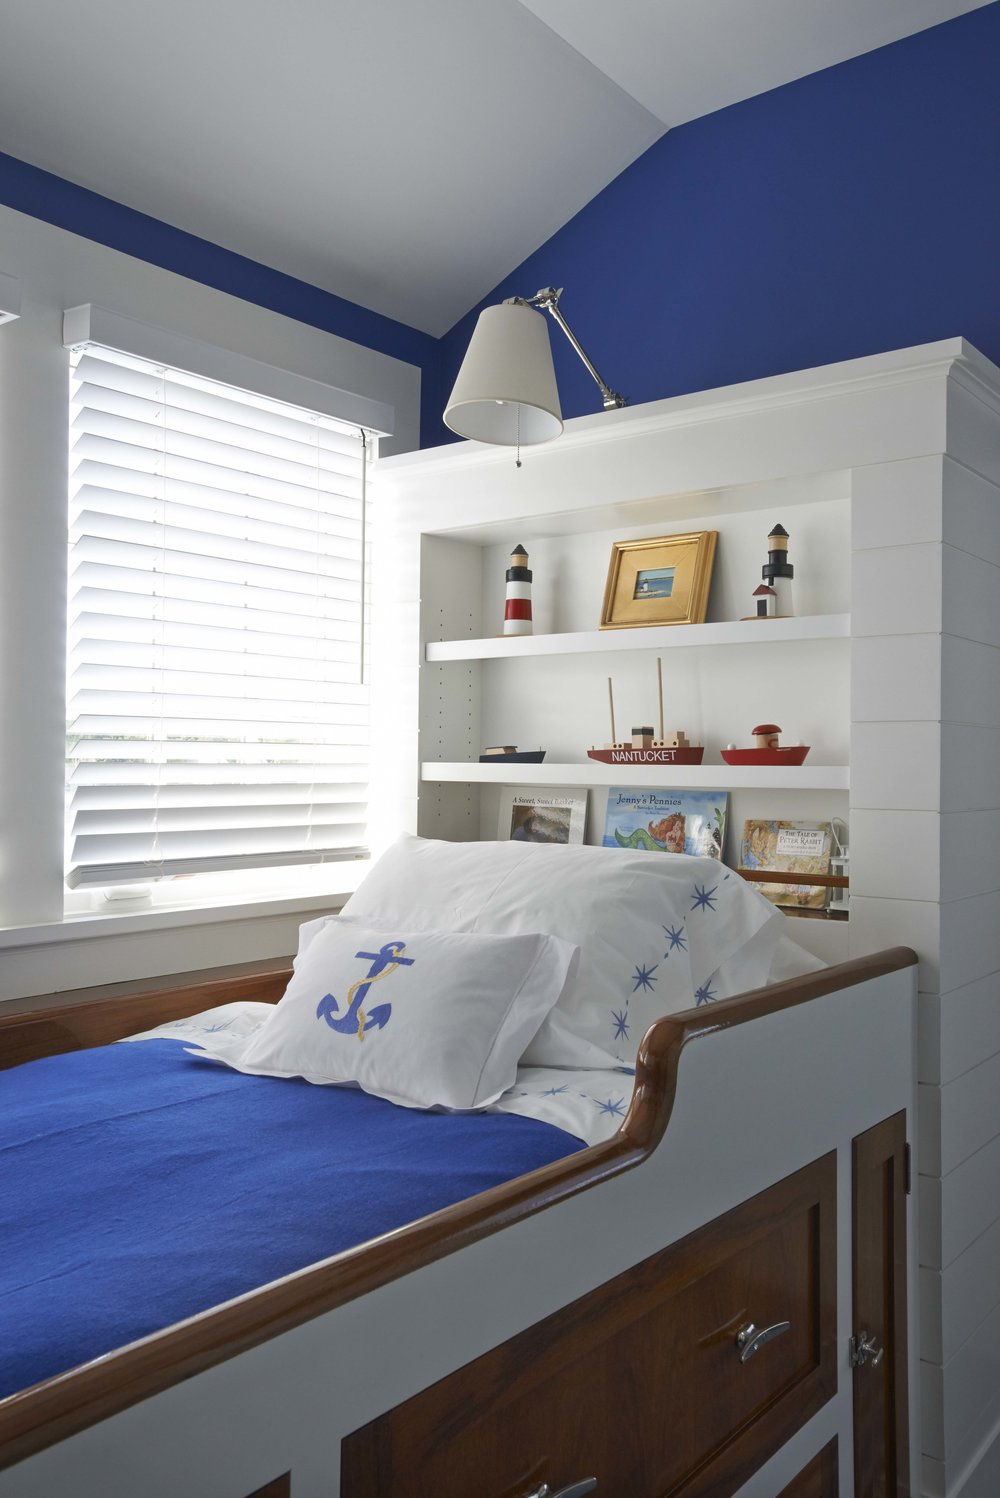 Hinnant Bunk Bed 3.jpg